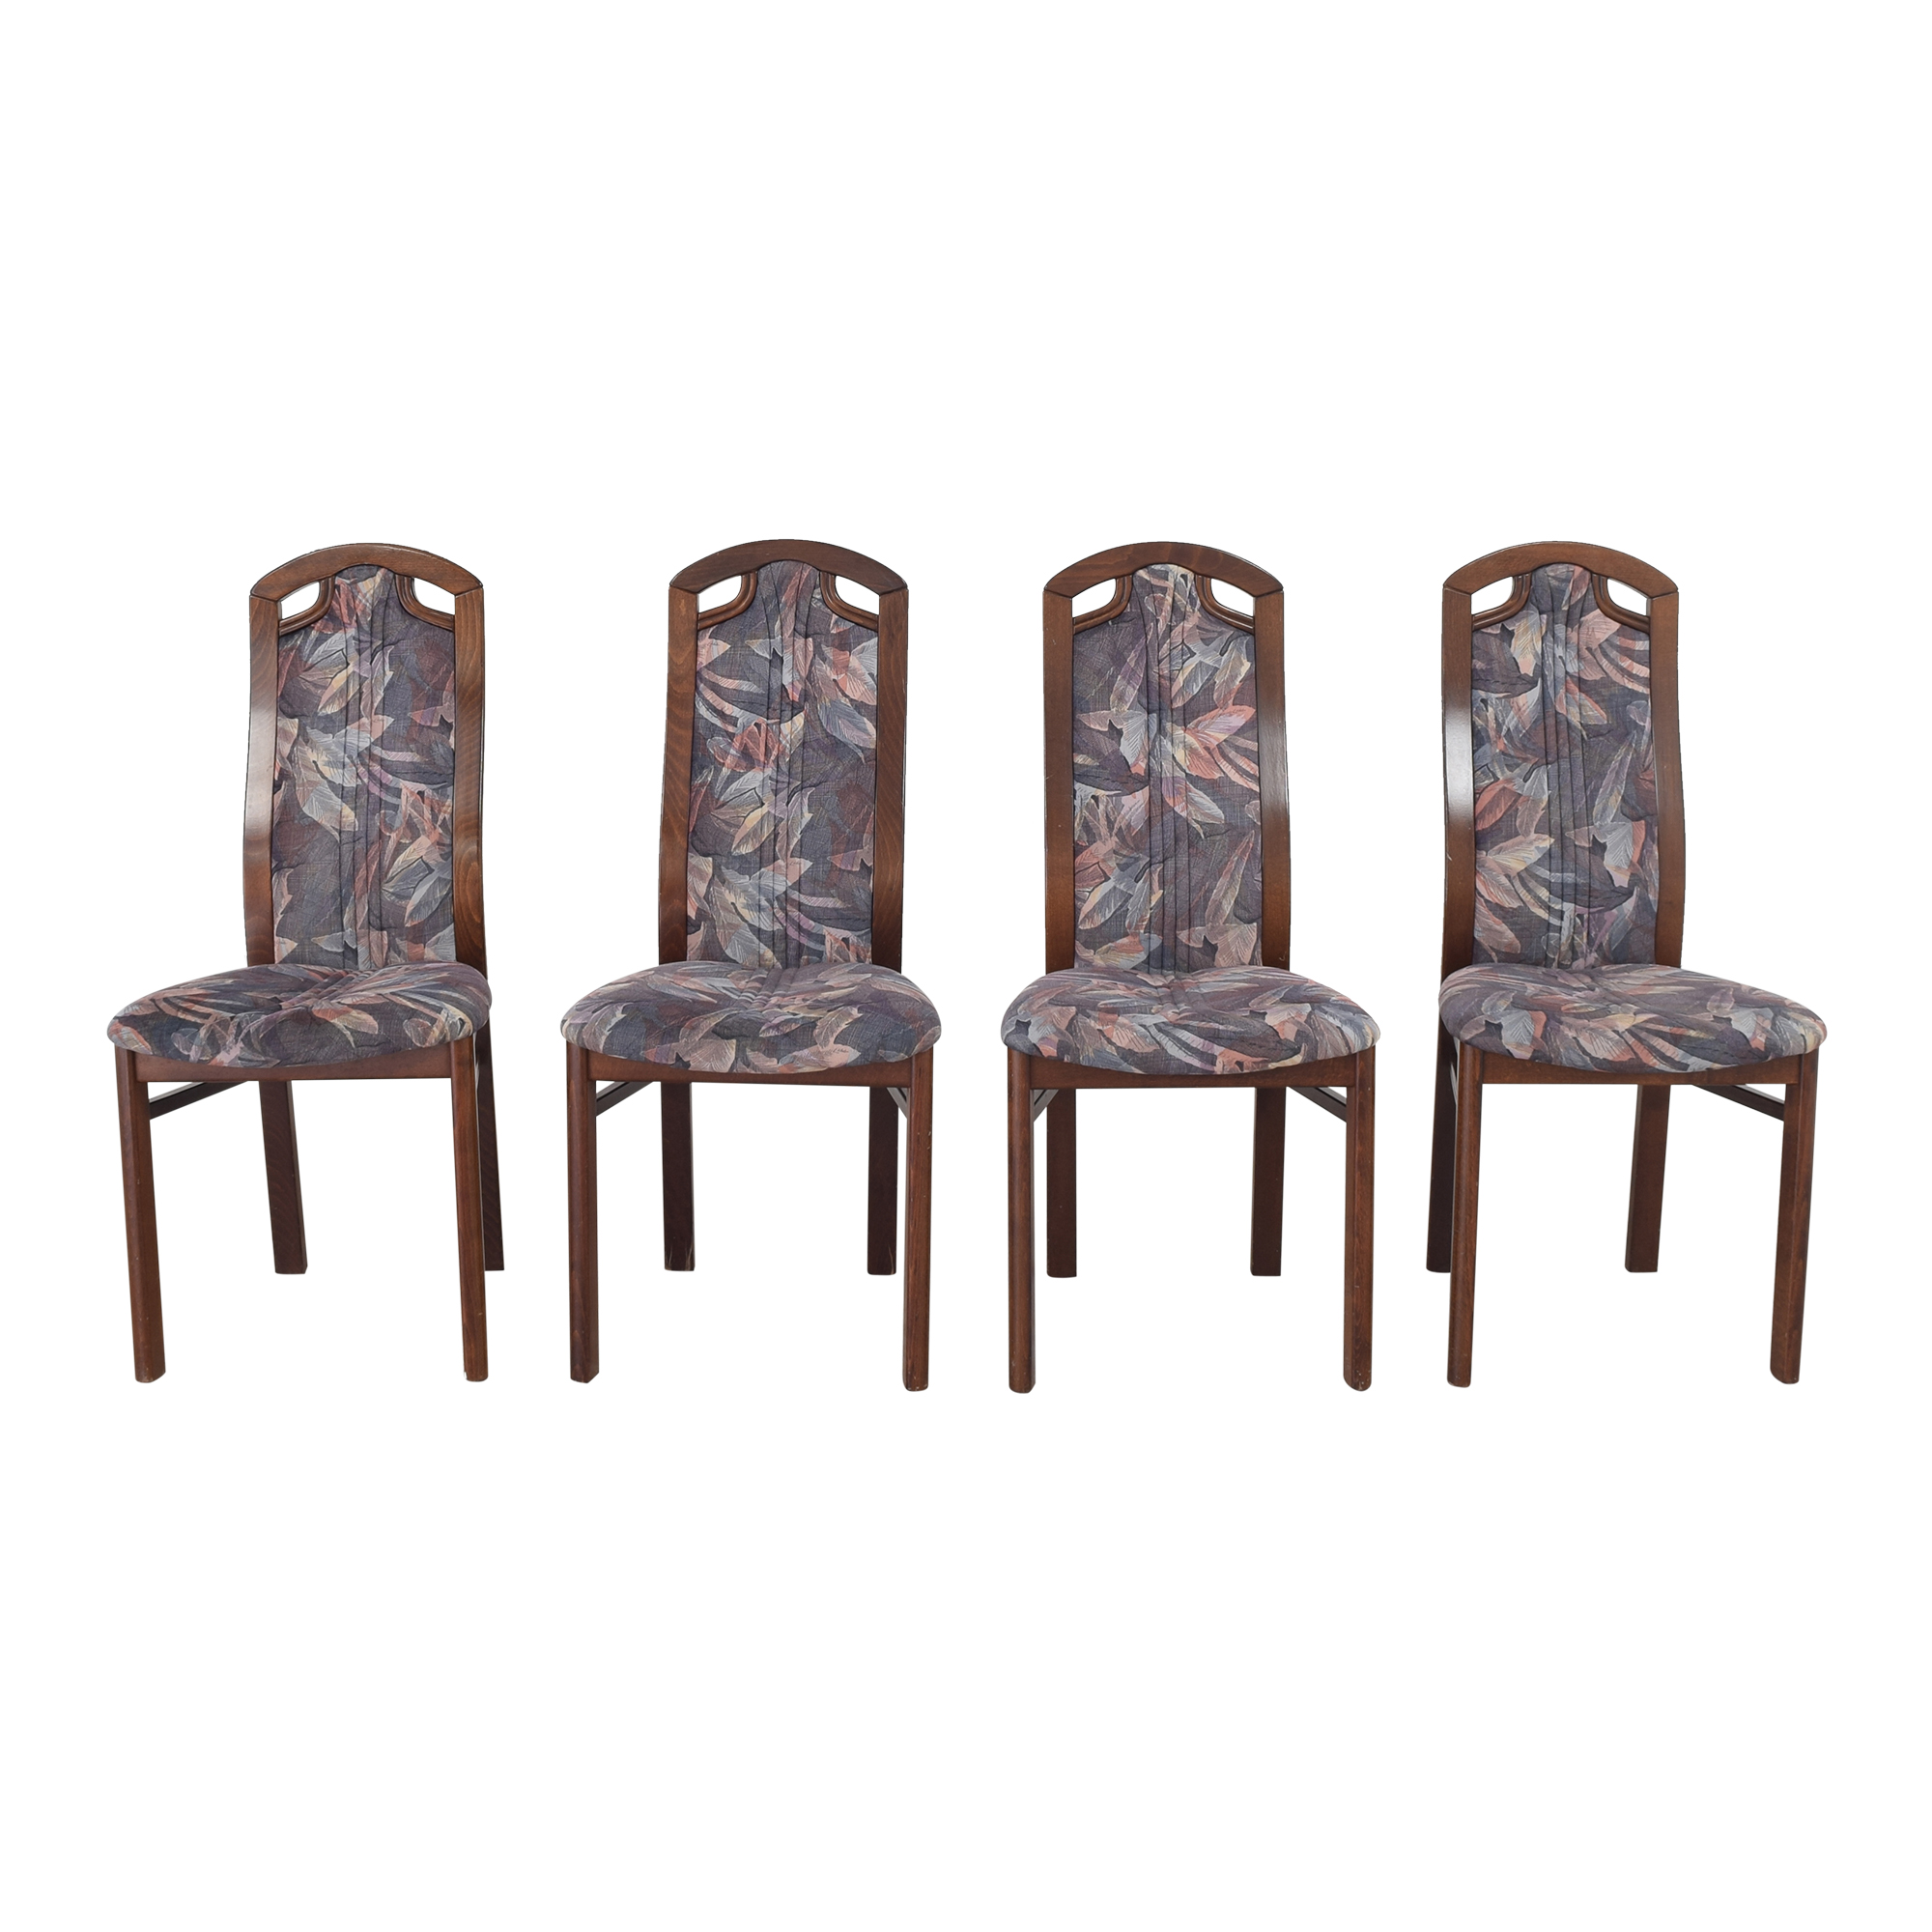 Benze Collection Benze Collection High Back Dining Chairs for sale